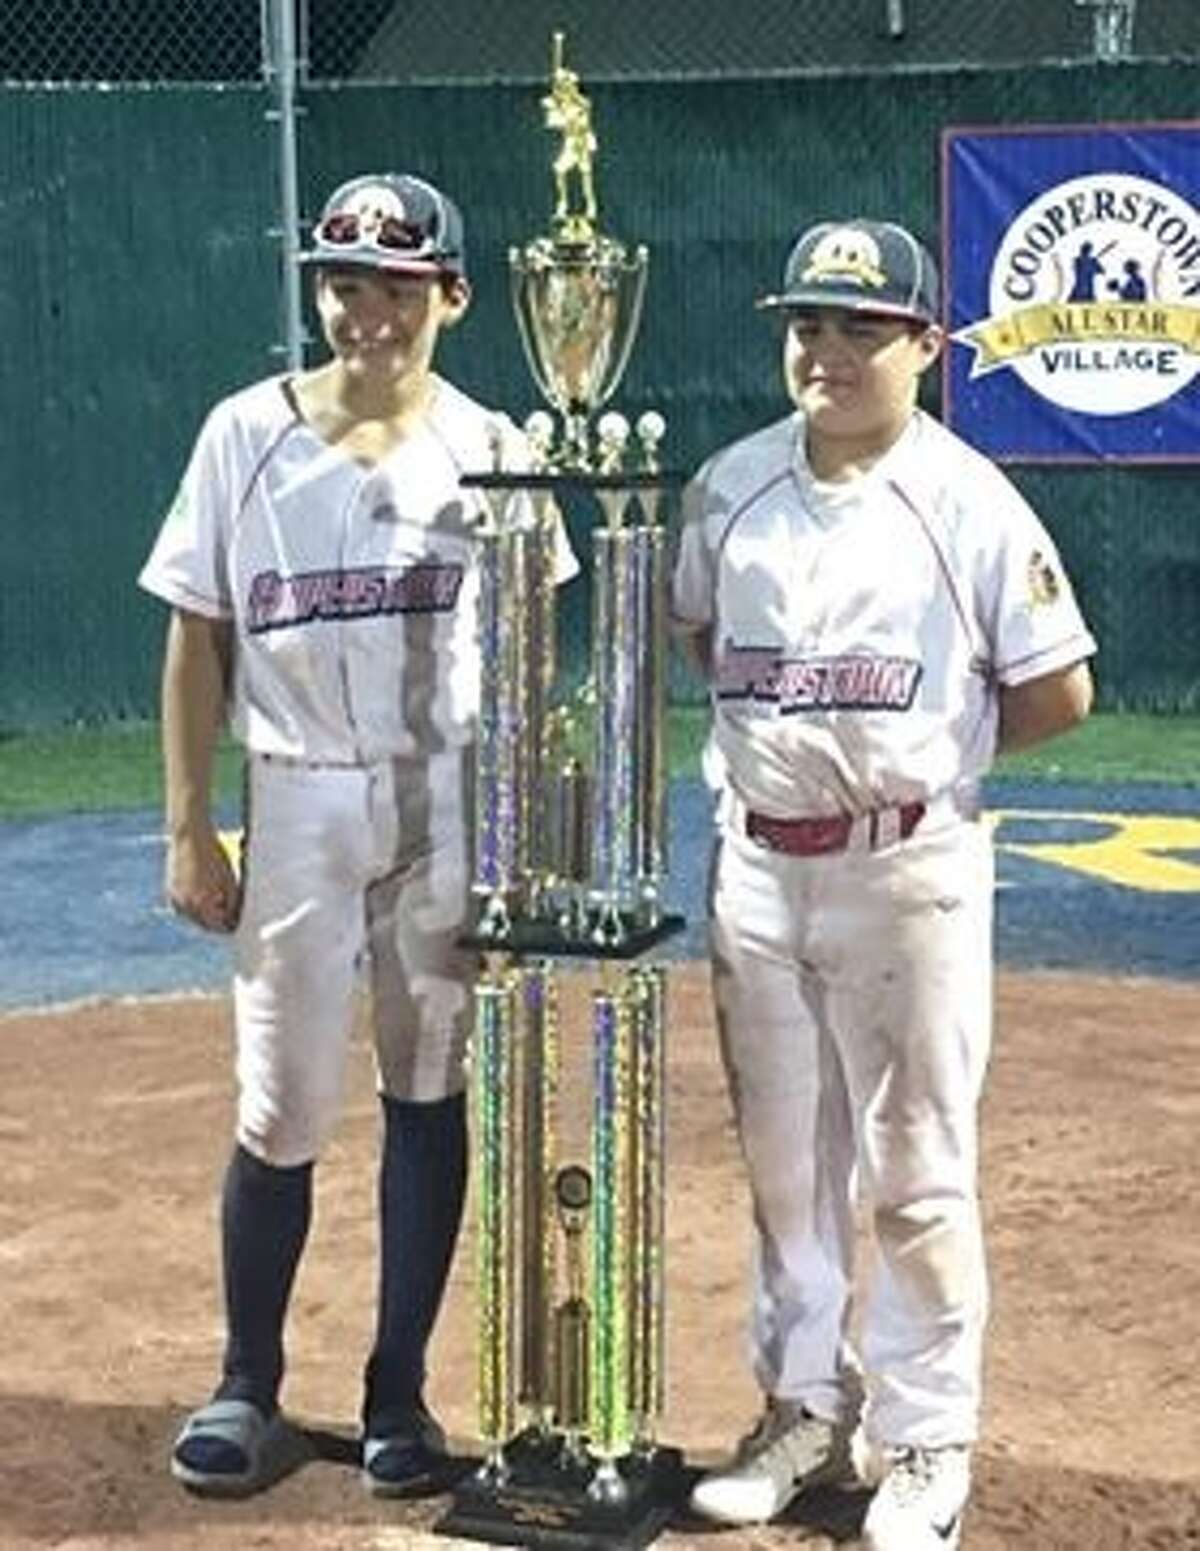 """Ronald �""""Trace�"""" Shirley and Dennis Hollingsworth, both of Tarkington, competed in the Cooperstown Youth World Series June 17-22. Their team went undefeated. They are the sons of Ronald Shirley II and Dennis Hollingsworth, respectively, who both brought home the Dixie Youth World Series title as 12-year-olds in 1989. While competing, the TX Slam team broke the Cooperstown Allstar Village record for most homerooms -- 34 total in 10 games."""